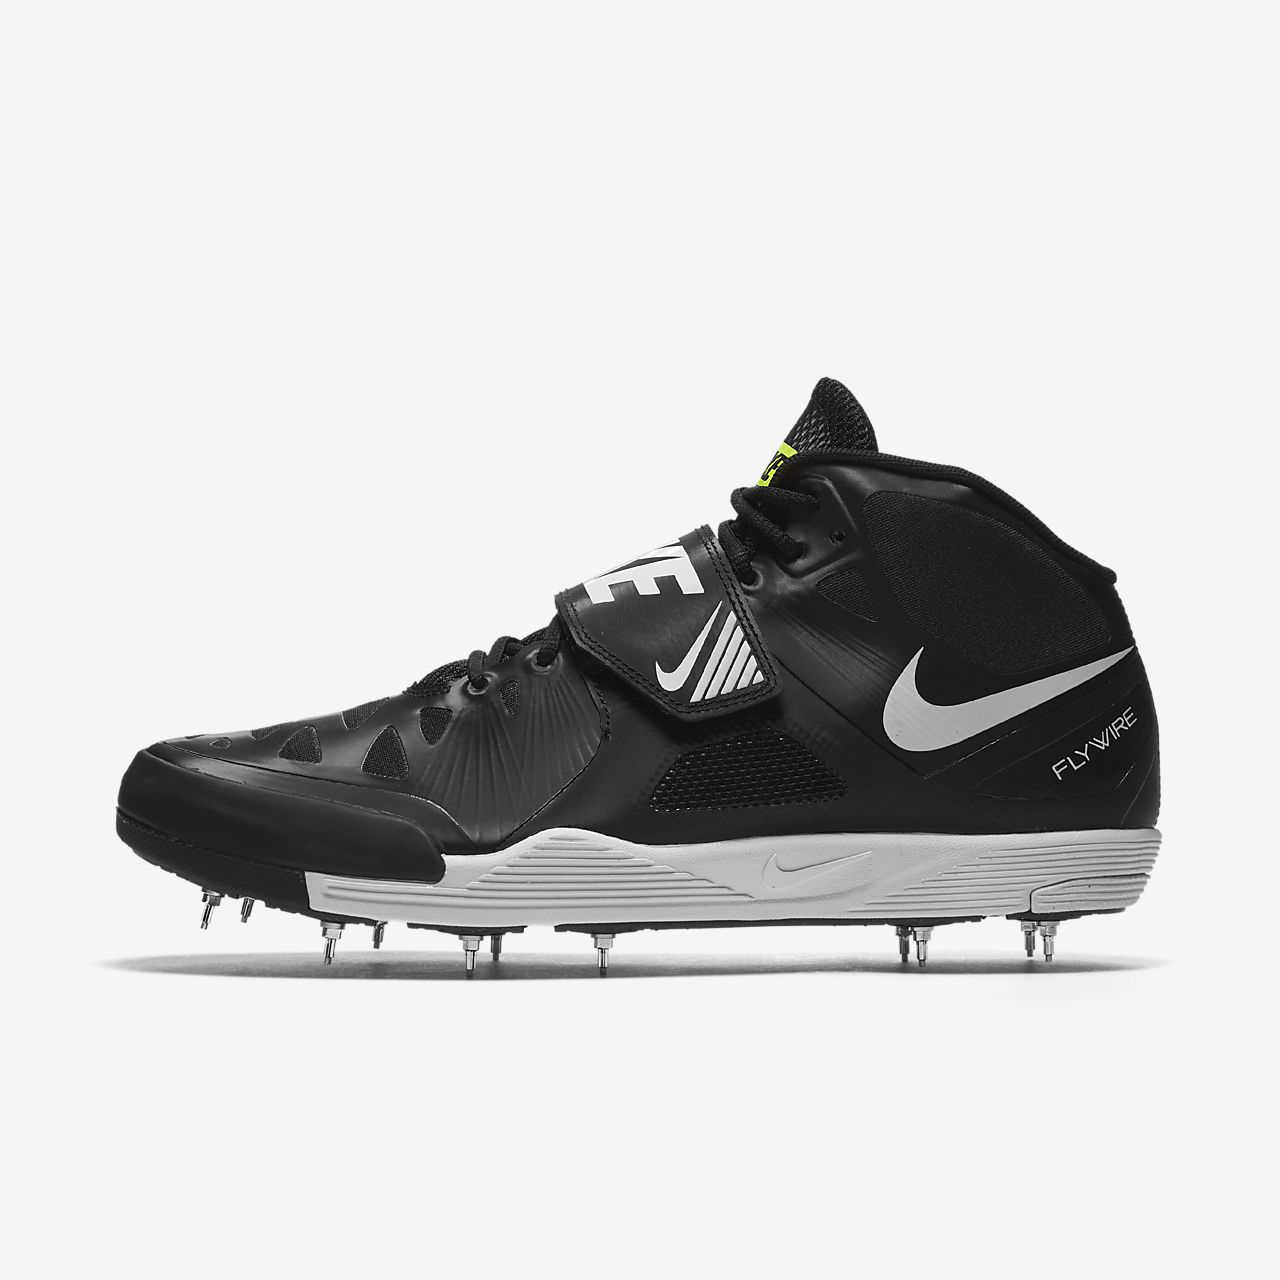 ... Nike Zoom Javelin Elite 2 Unisex Throwing Spike